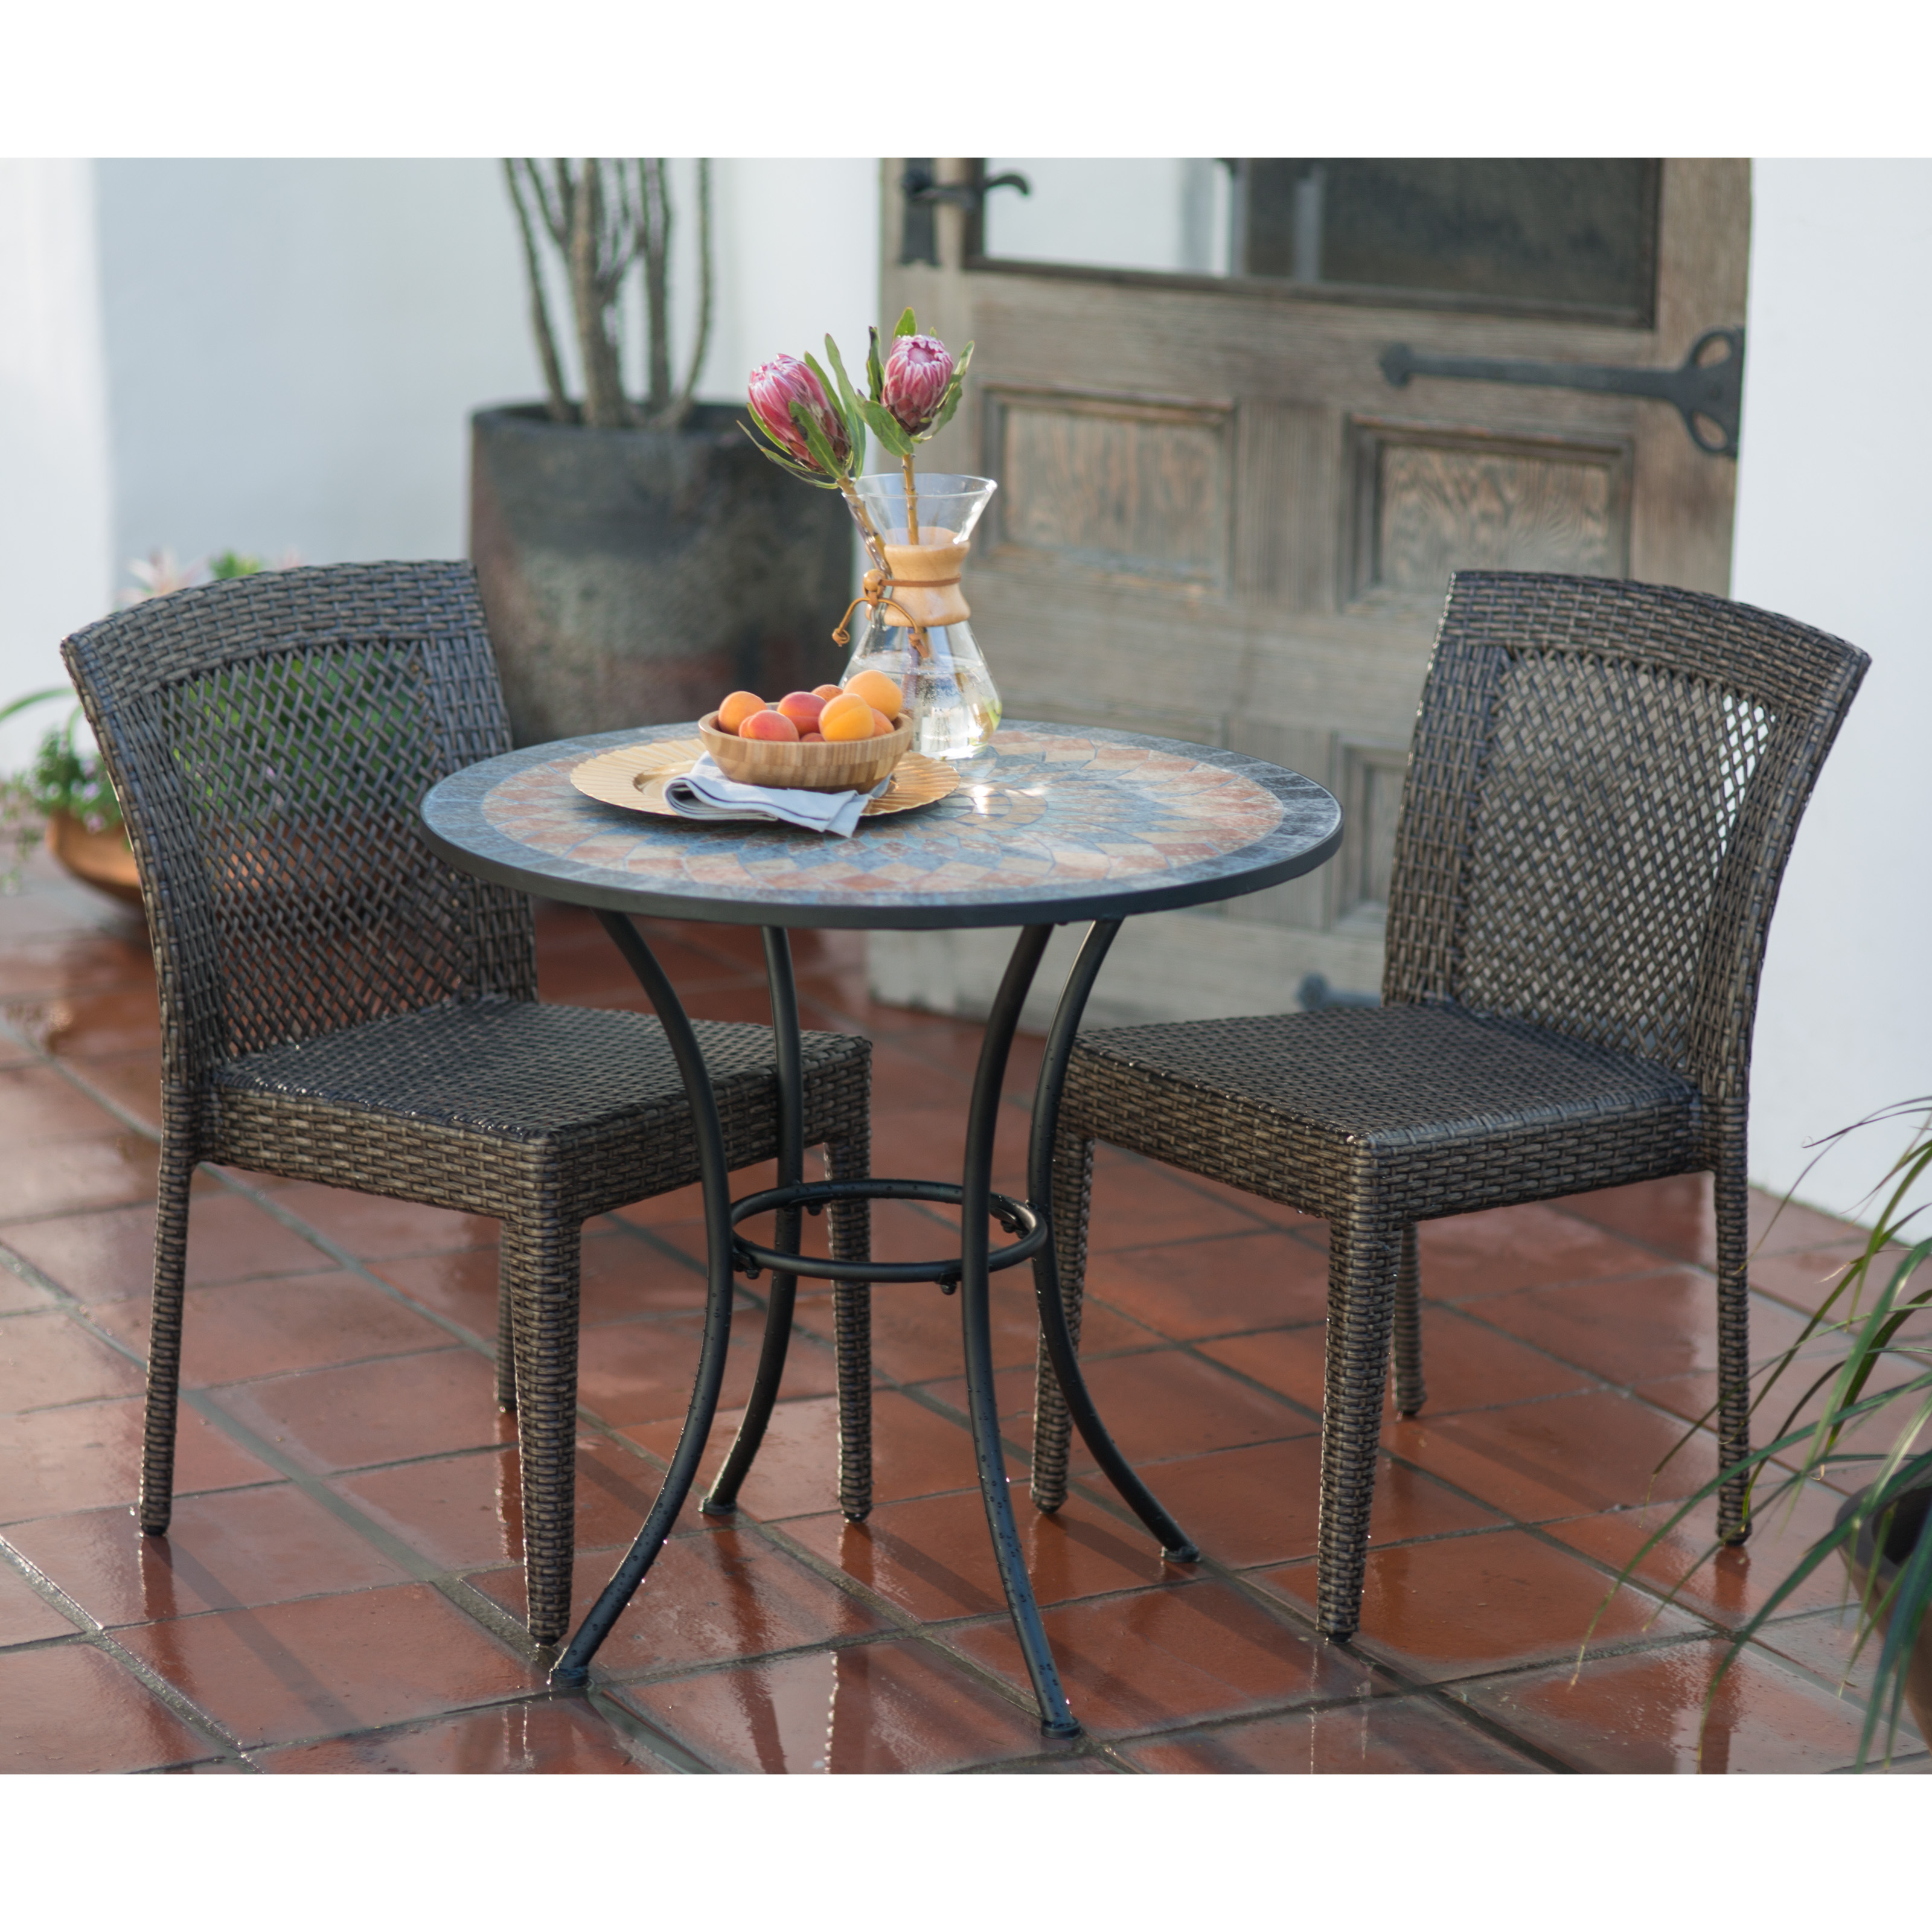 belham living tinsley 3 piece wicker bistro set hayneedle - Kitchen Bistro Set